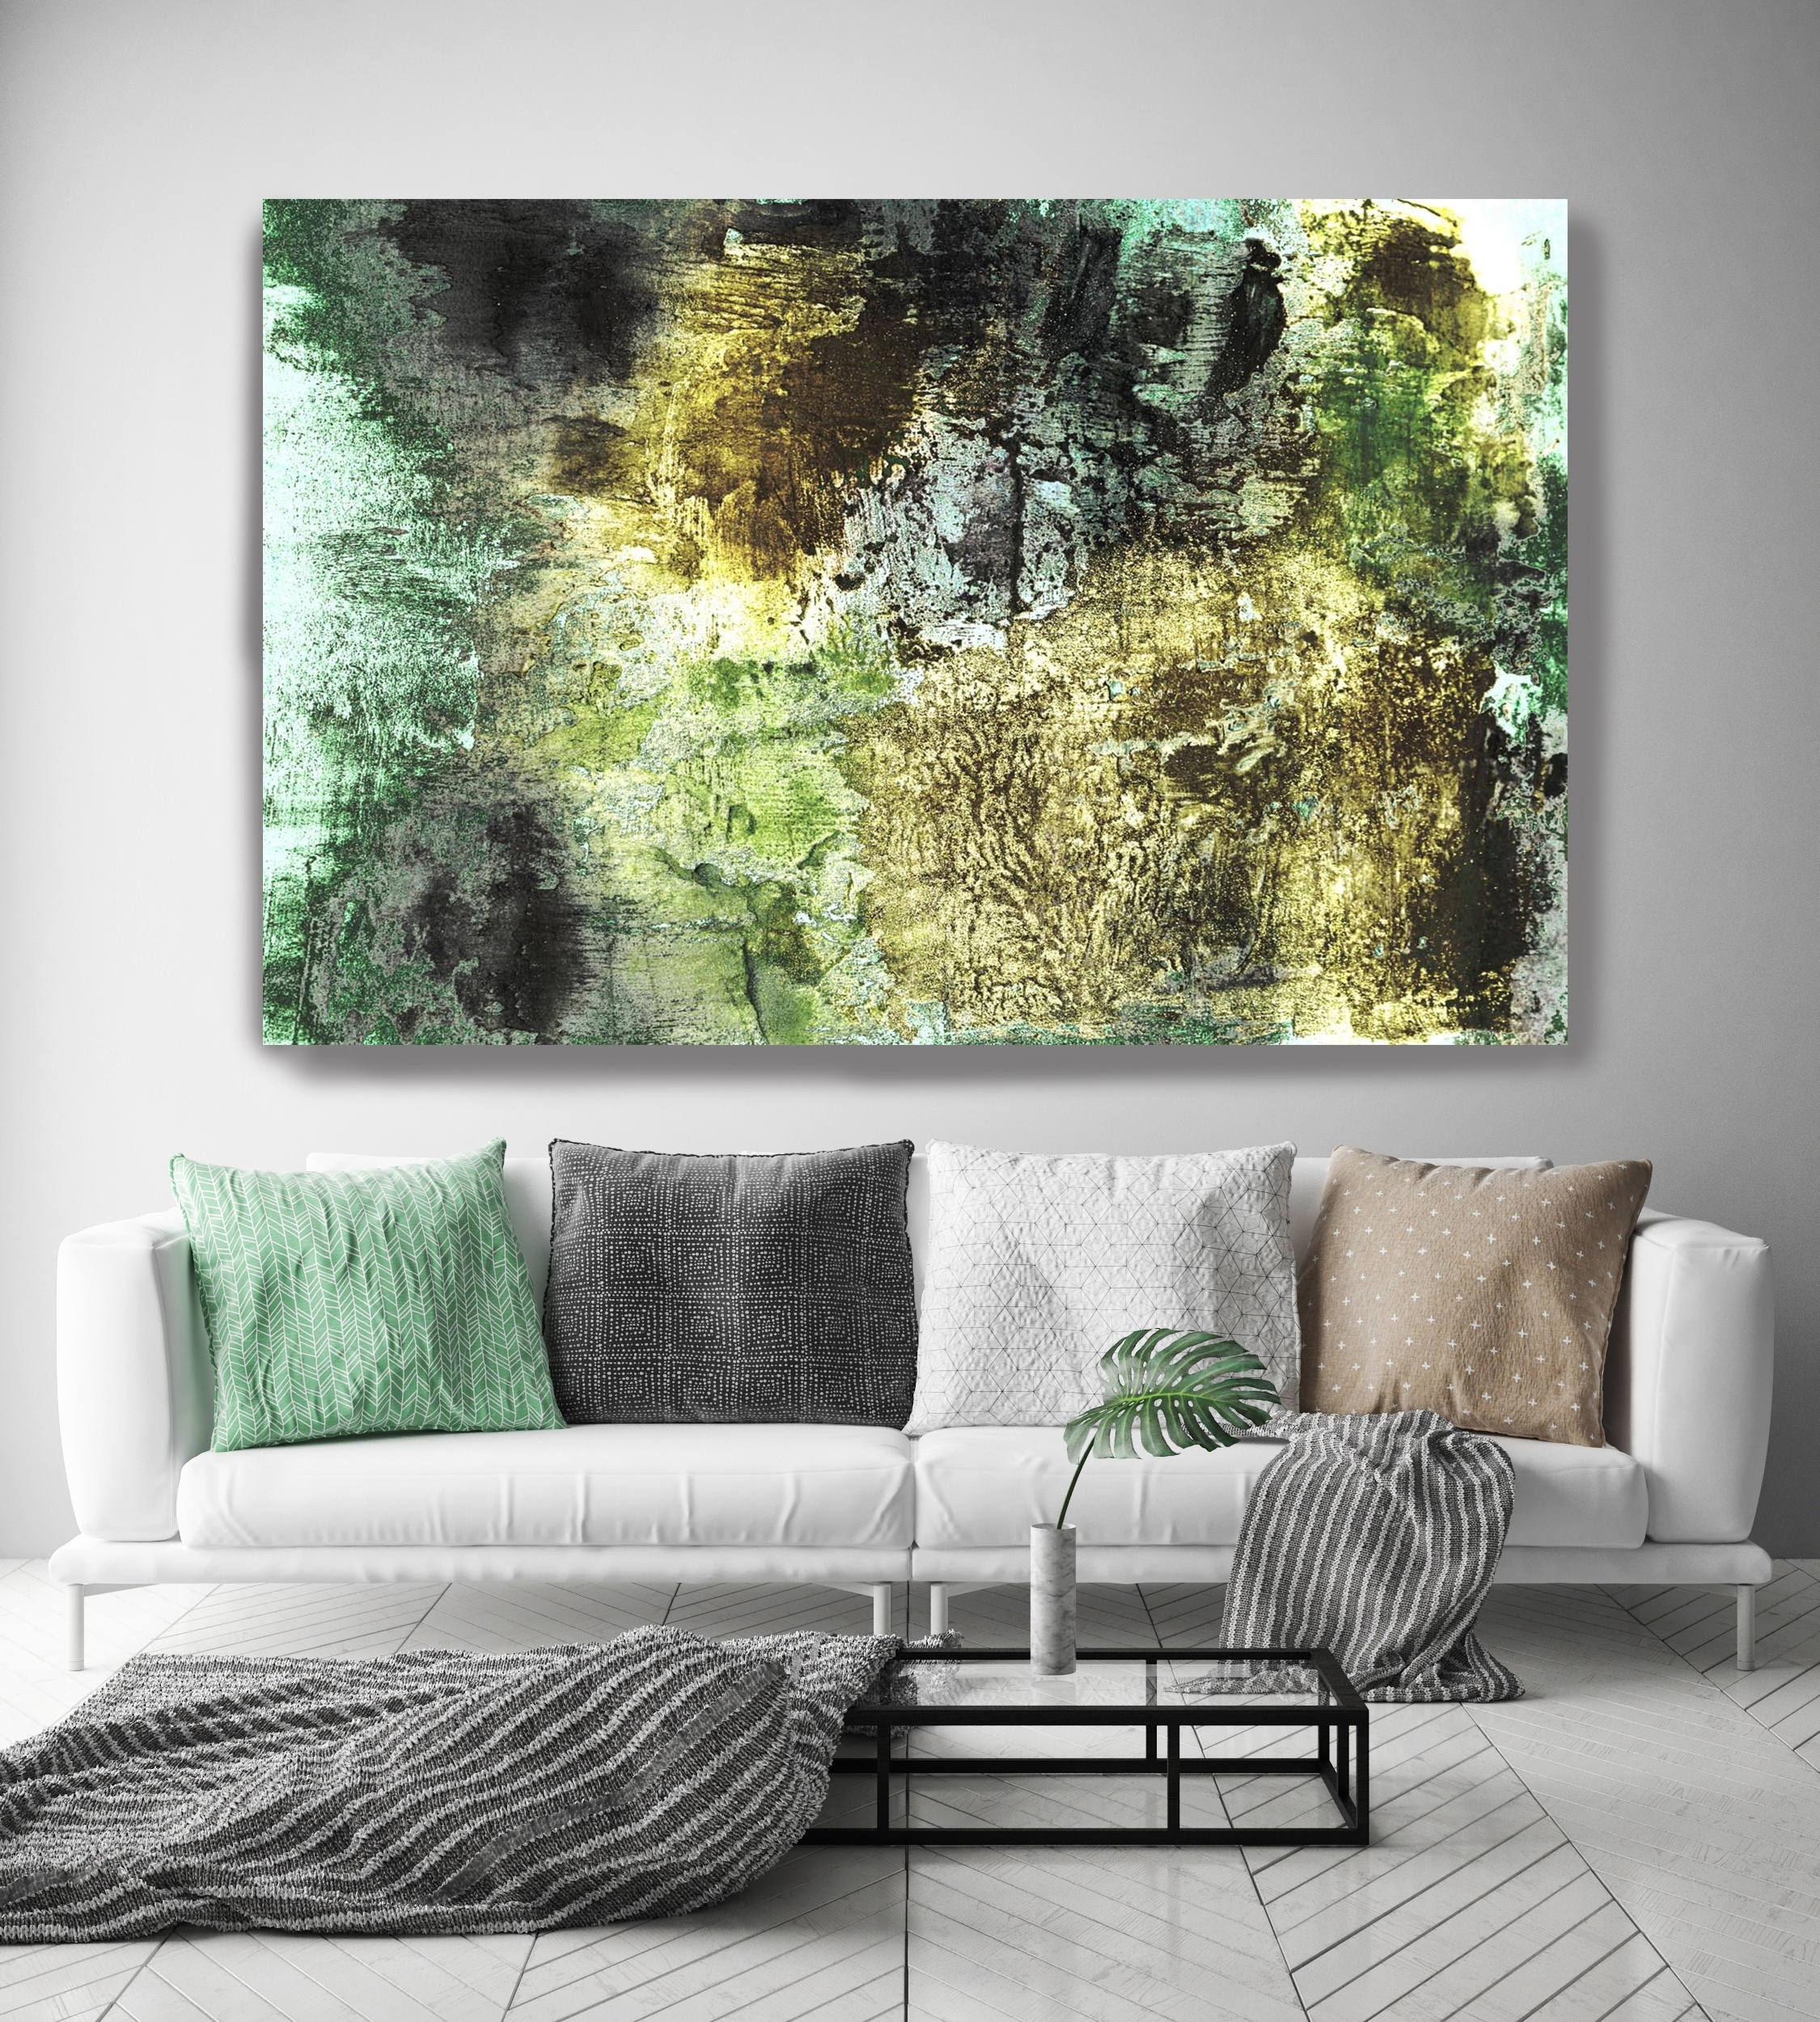 Vibrant Hues 31. Abstract Paintings Art, Abstract Green Gold Extra pertaining to Extra Large Wall Art (Image 20 of 20)